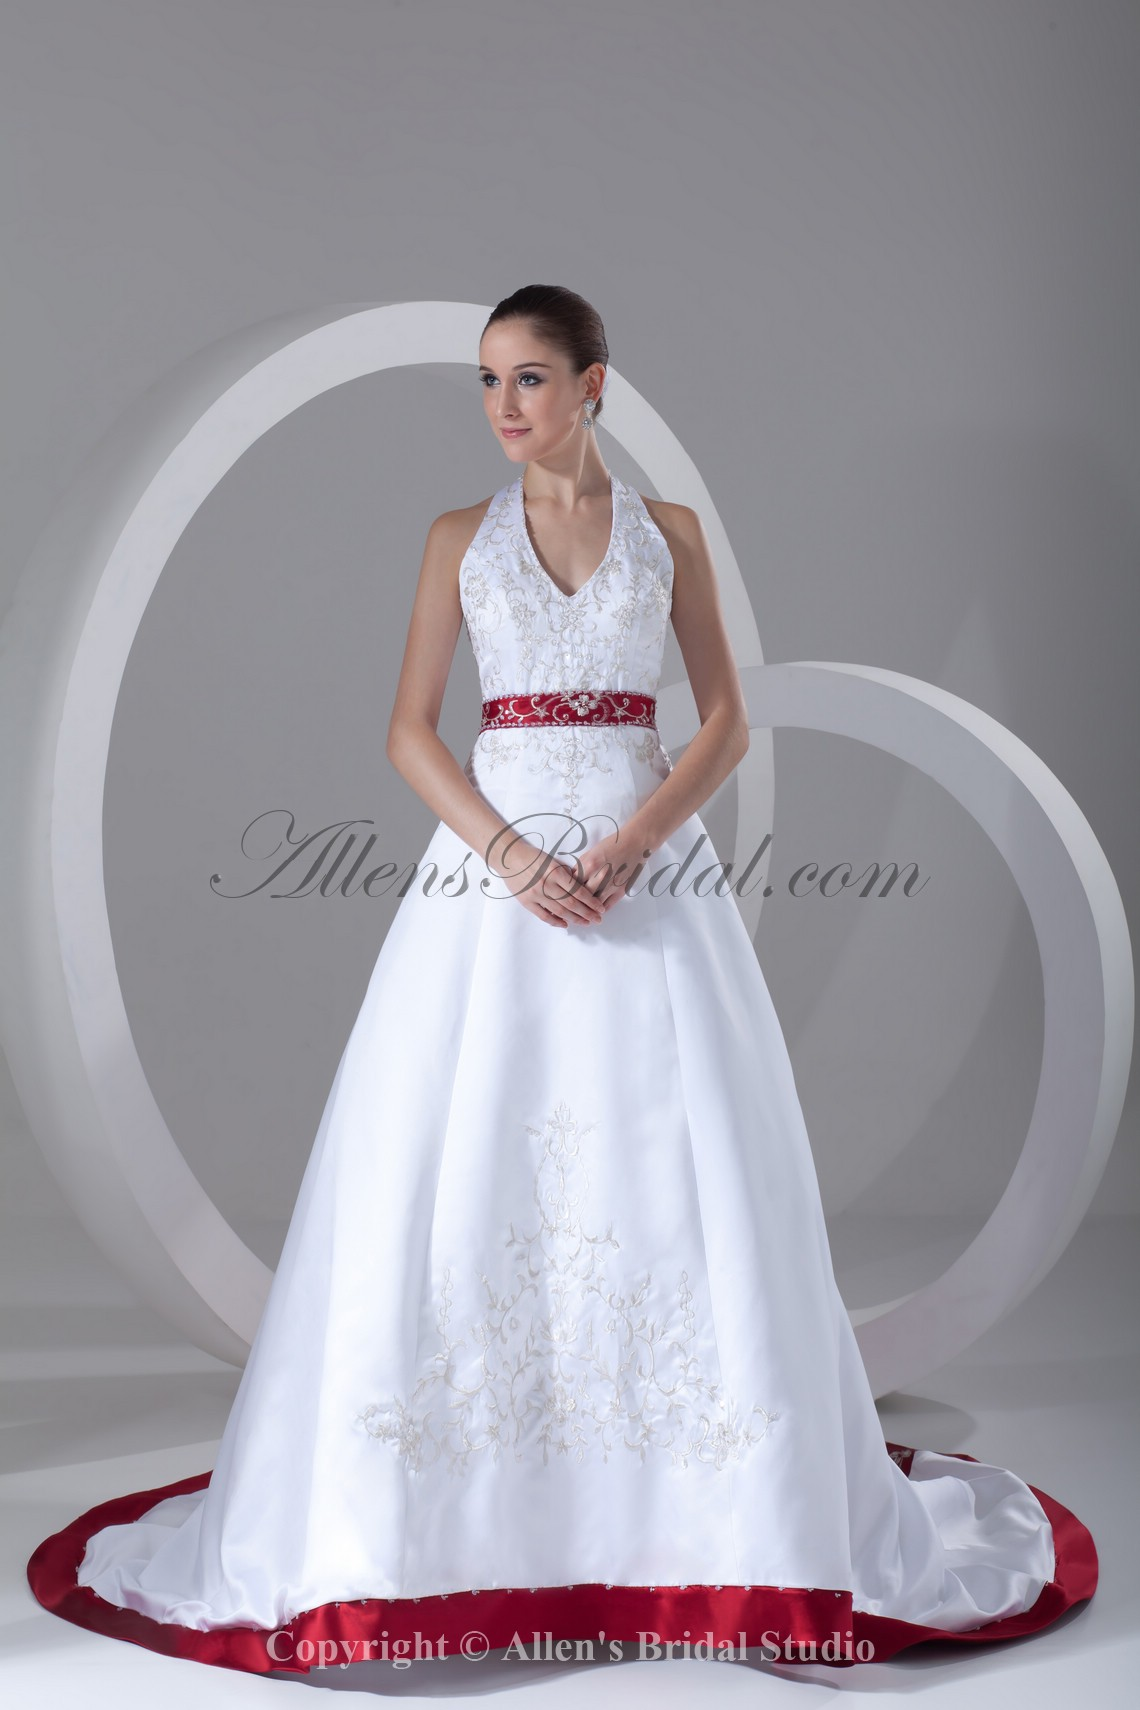 /905-7252/satin-halter-neckline-chapel-train-a-line-embroidered-wedding-dress.jpg